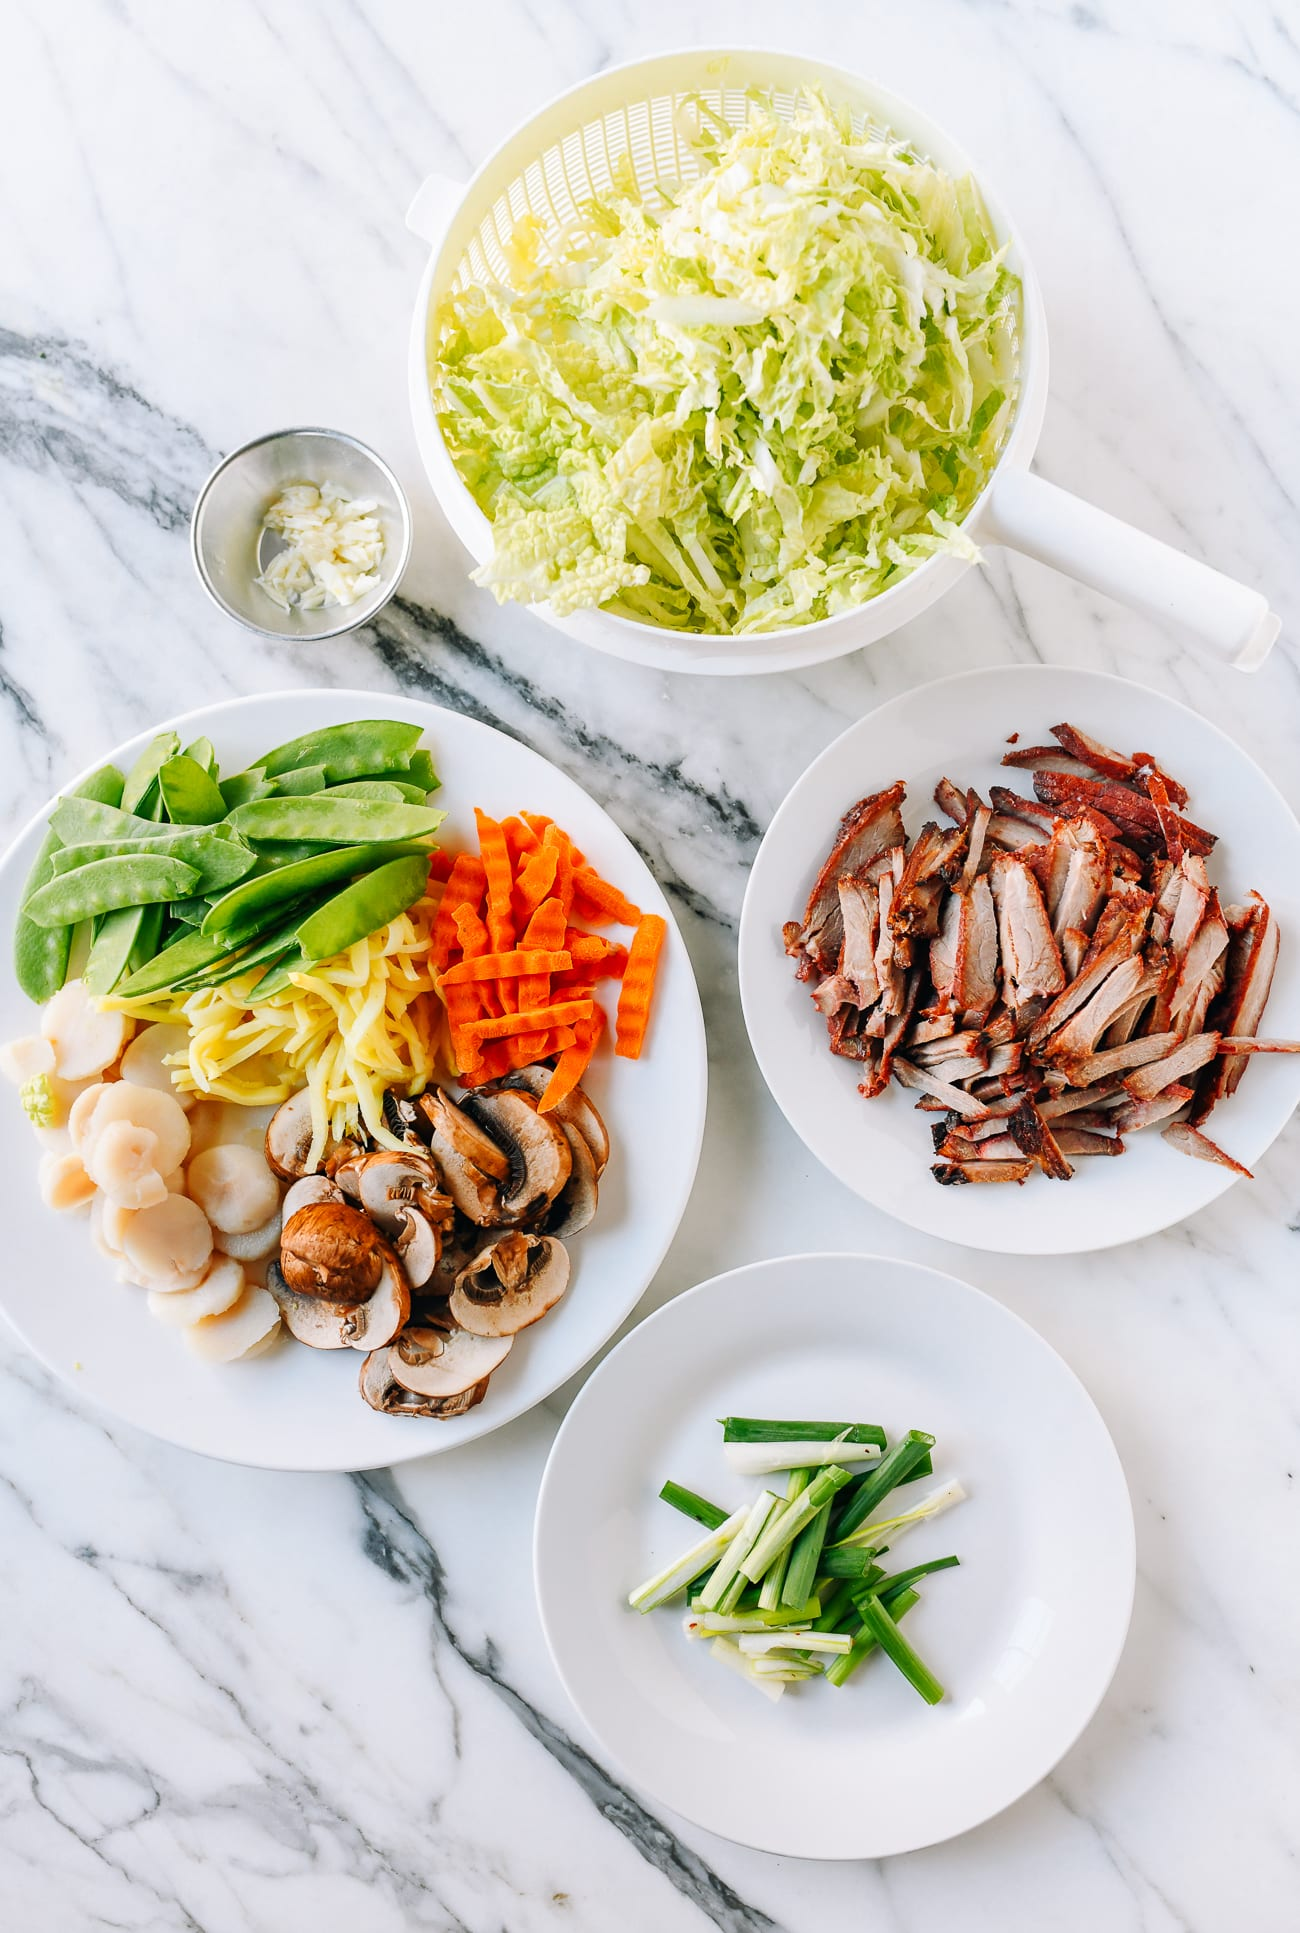 All the ingredients prepared for pork lo mein